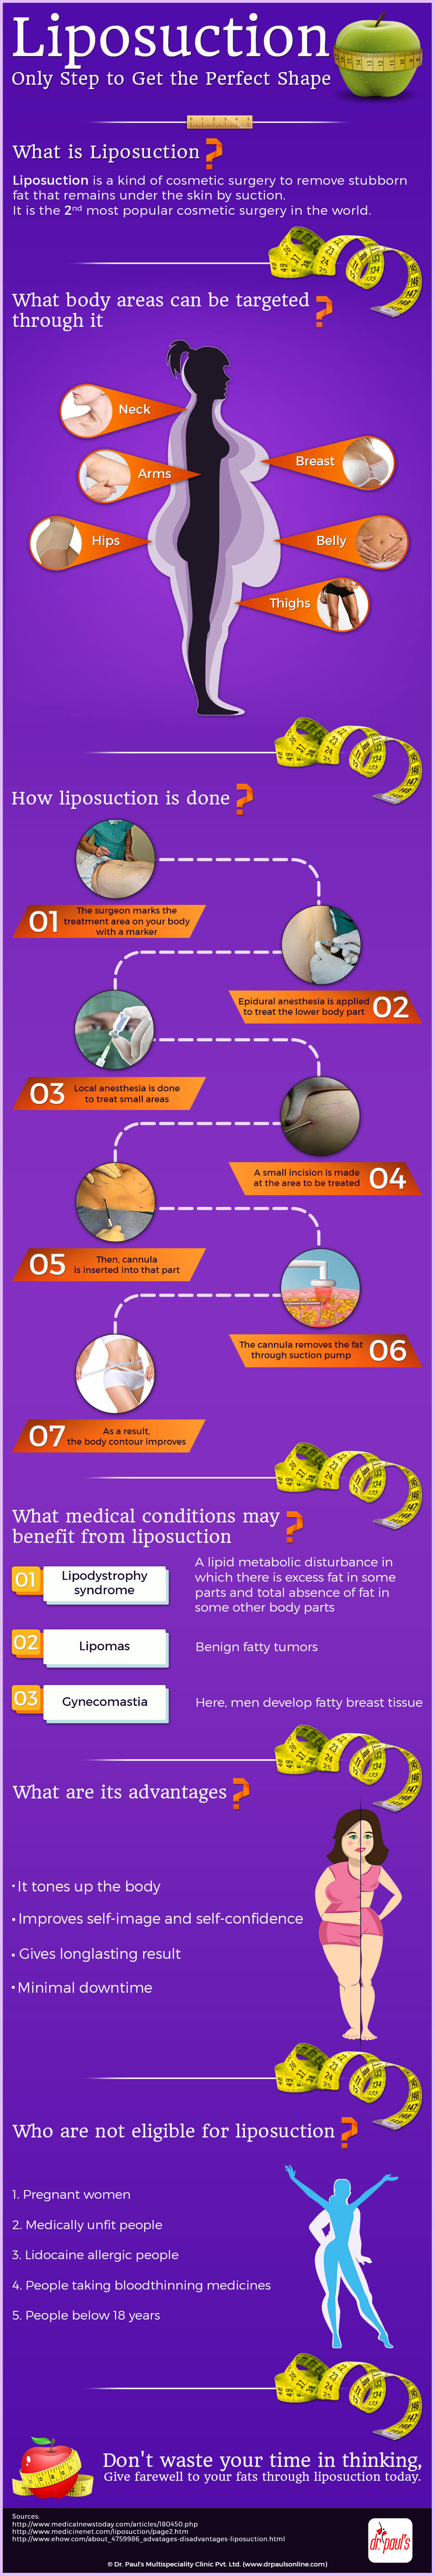 liposuction-infographic